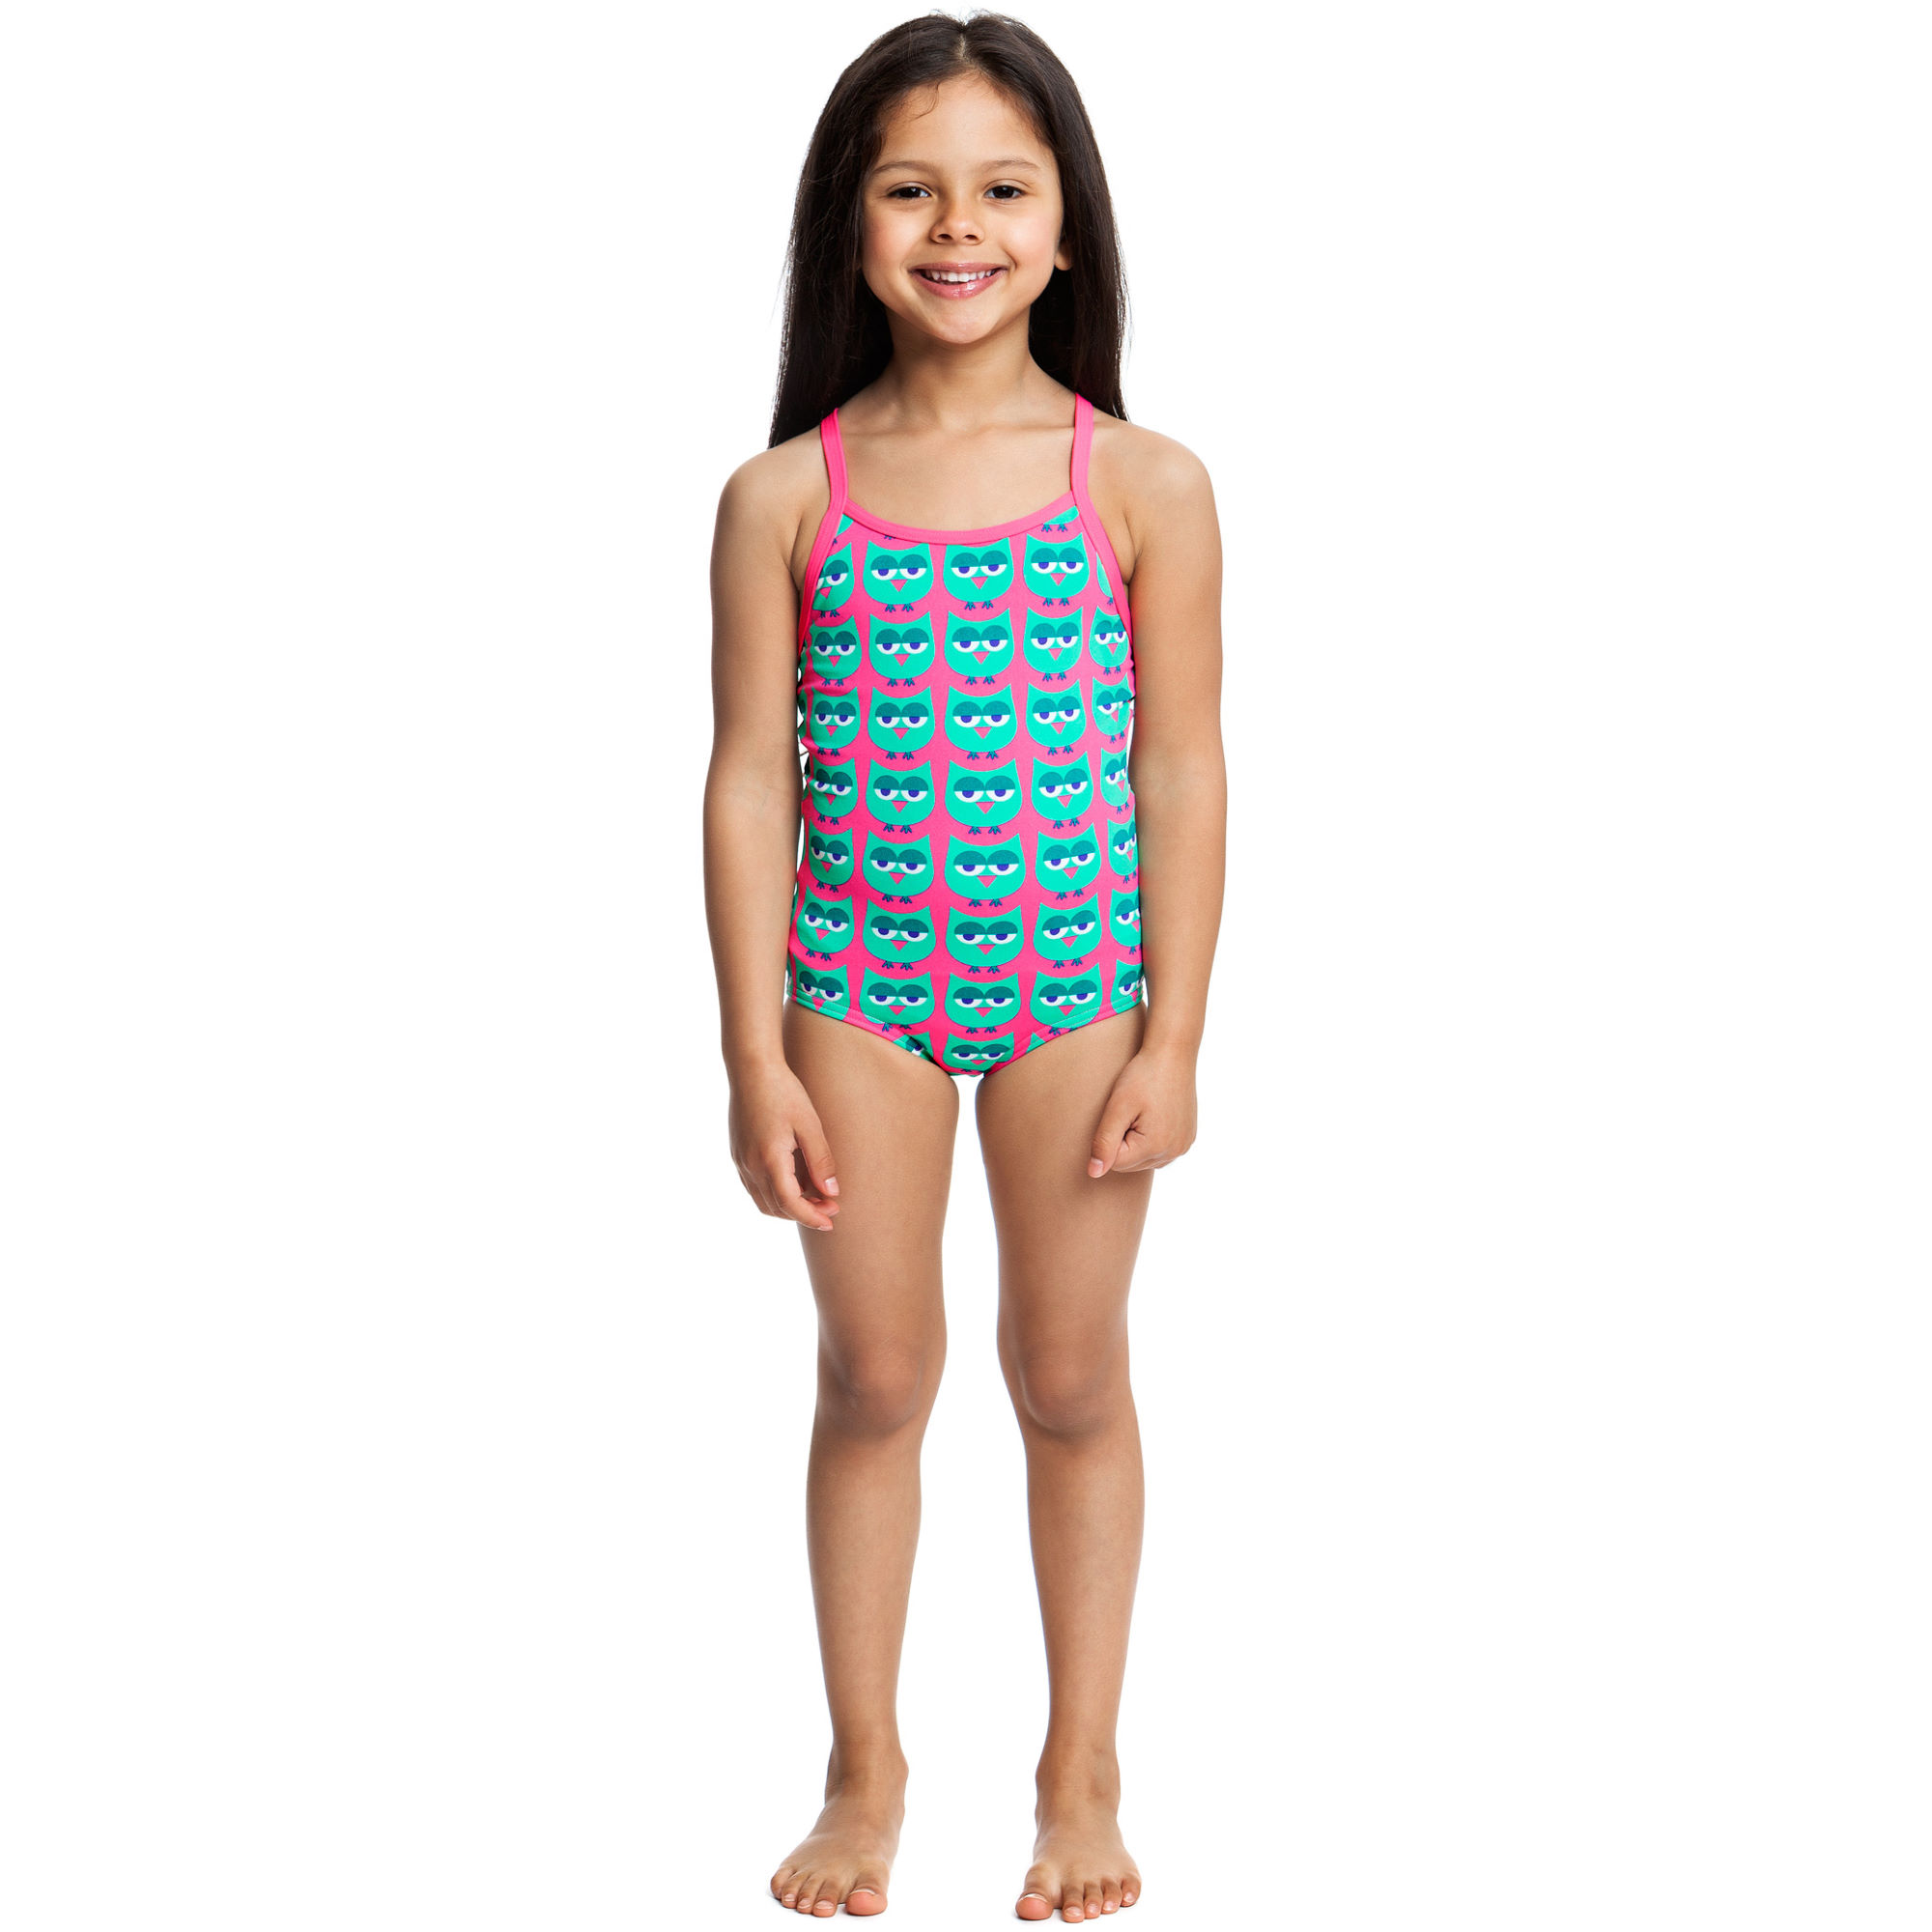 Our girls' swimwear is designed with children in mind. We carry one-piece and two-piece styles in adorable patterns and designs that both kids and parents will love. Designs range from simple classic styles with muted colors and straight lines to modern styles with plenty of embellishments and bold prints.